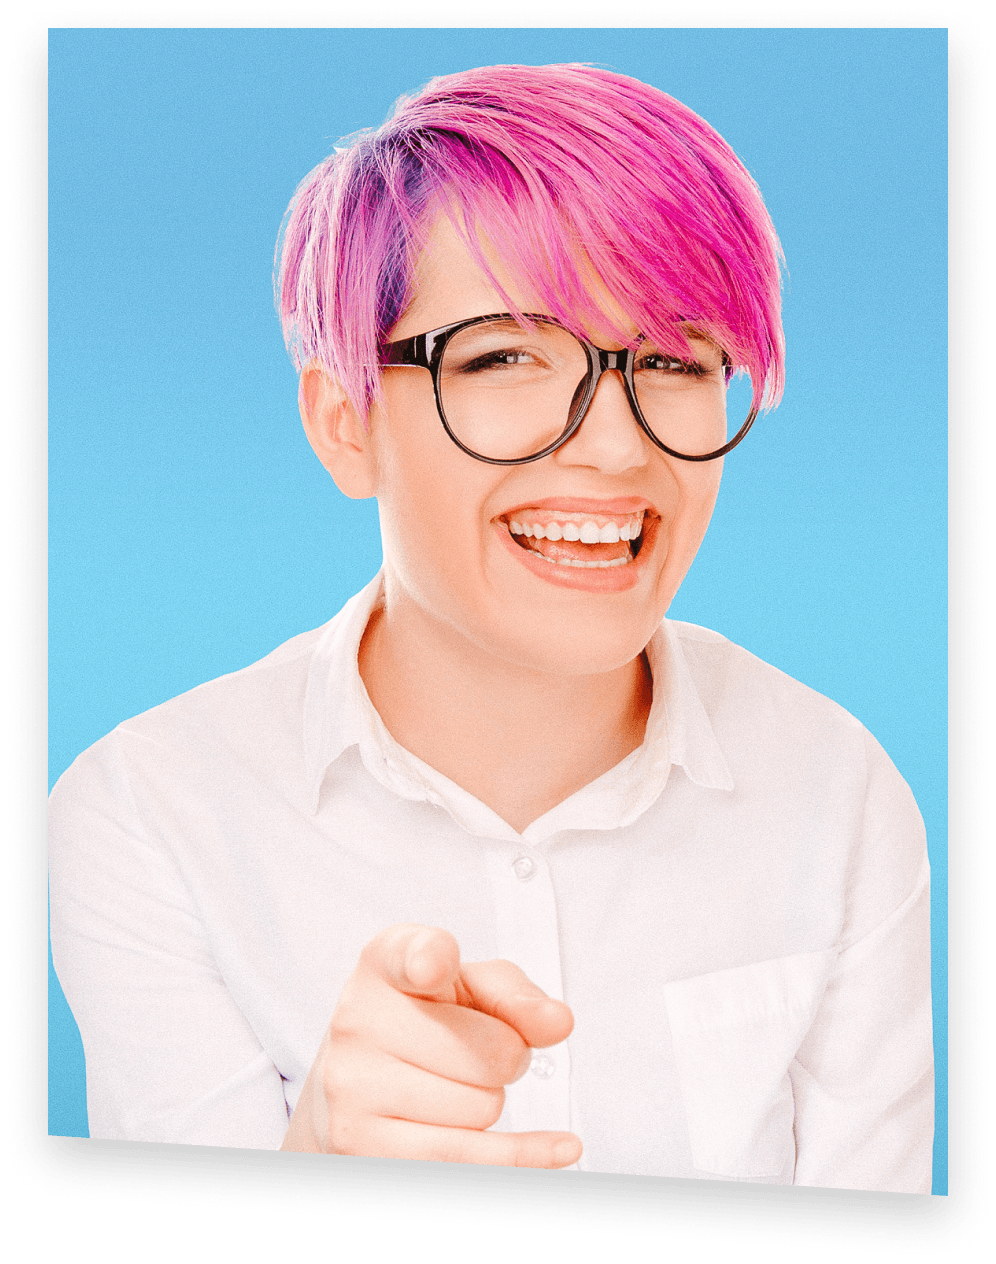 Shmoop student with magenta hair cheerfully pointing at you